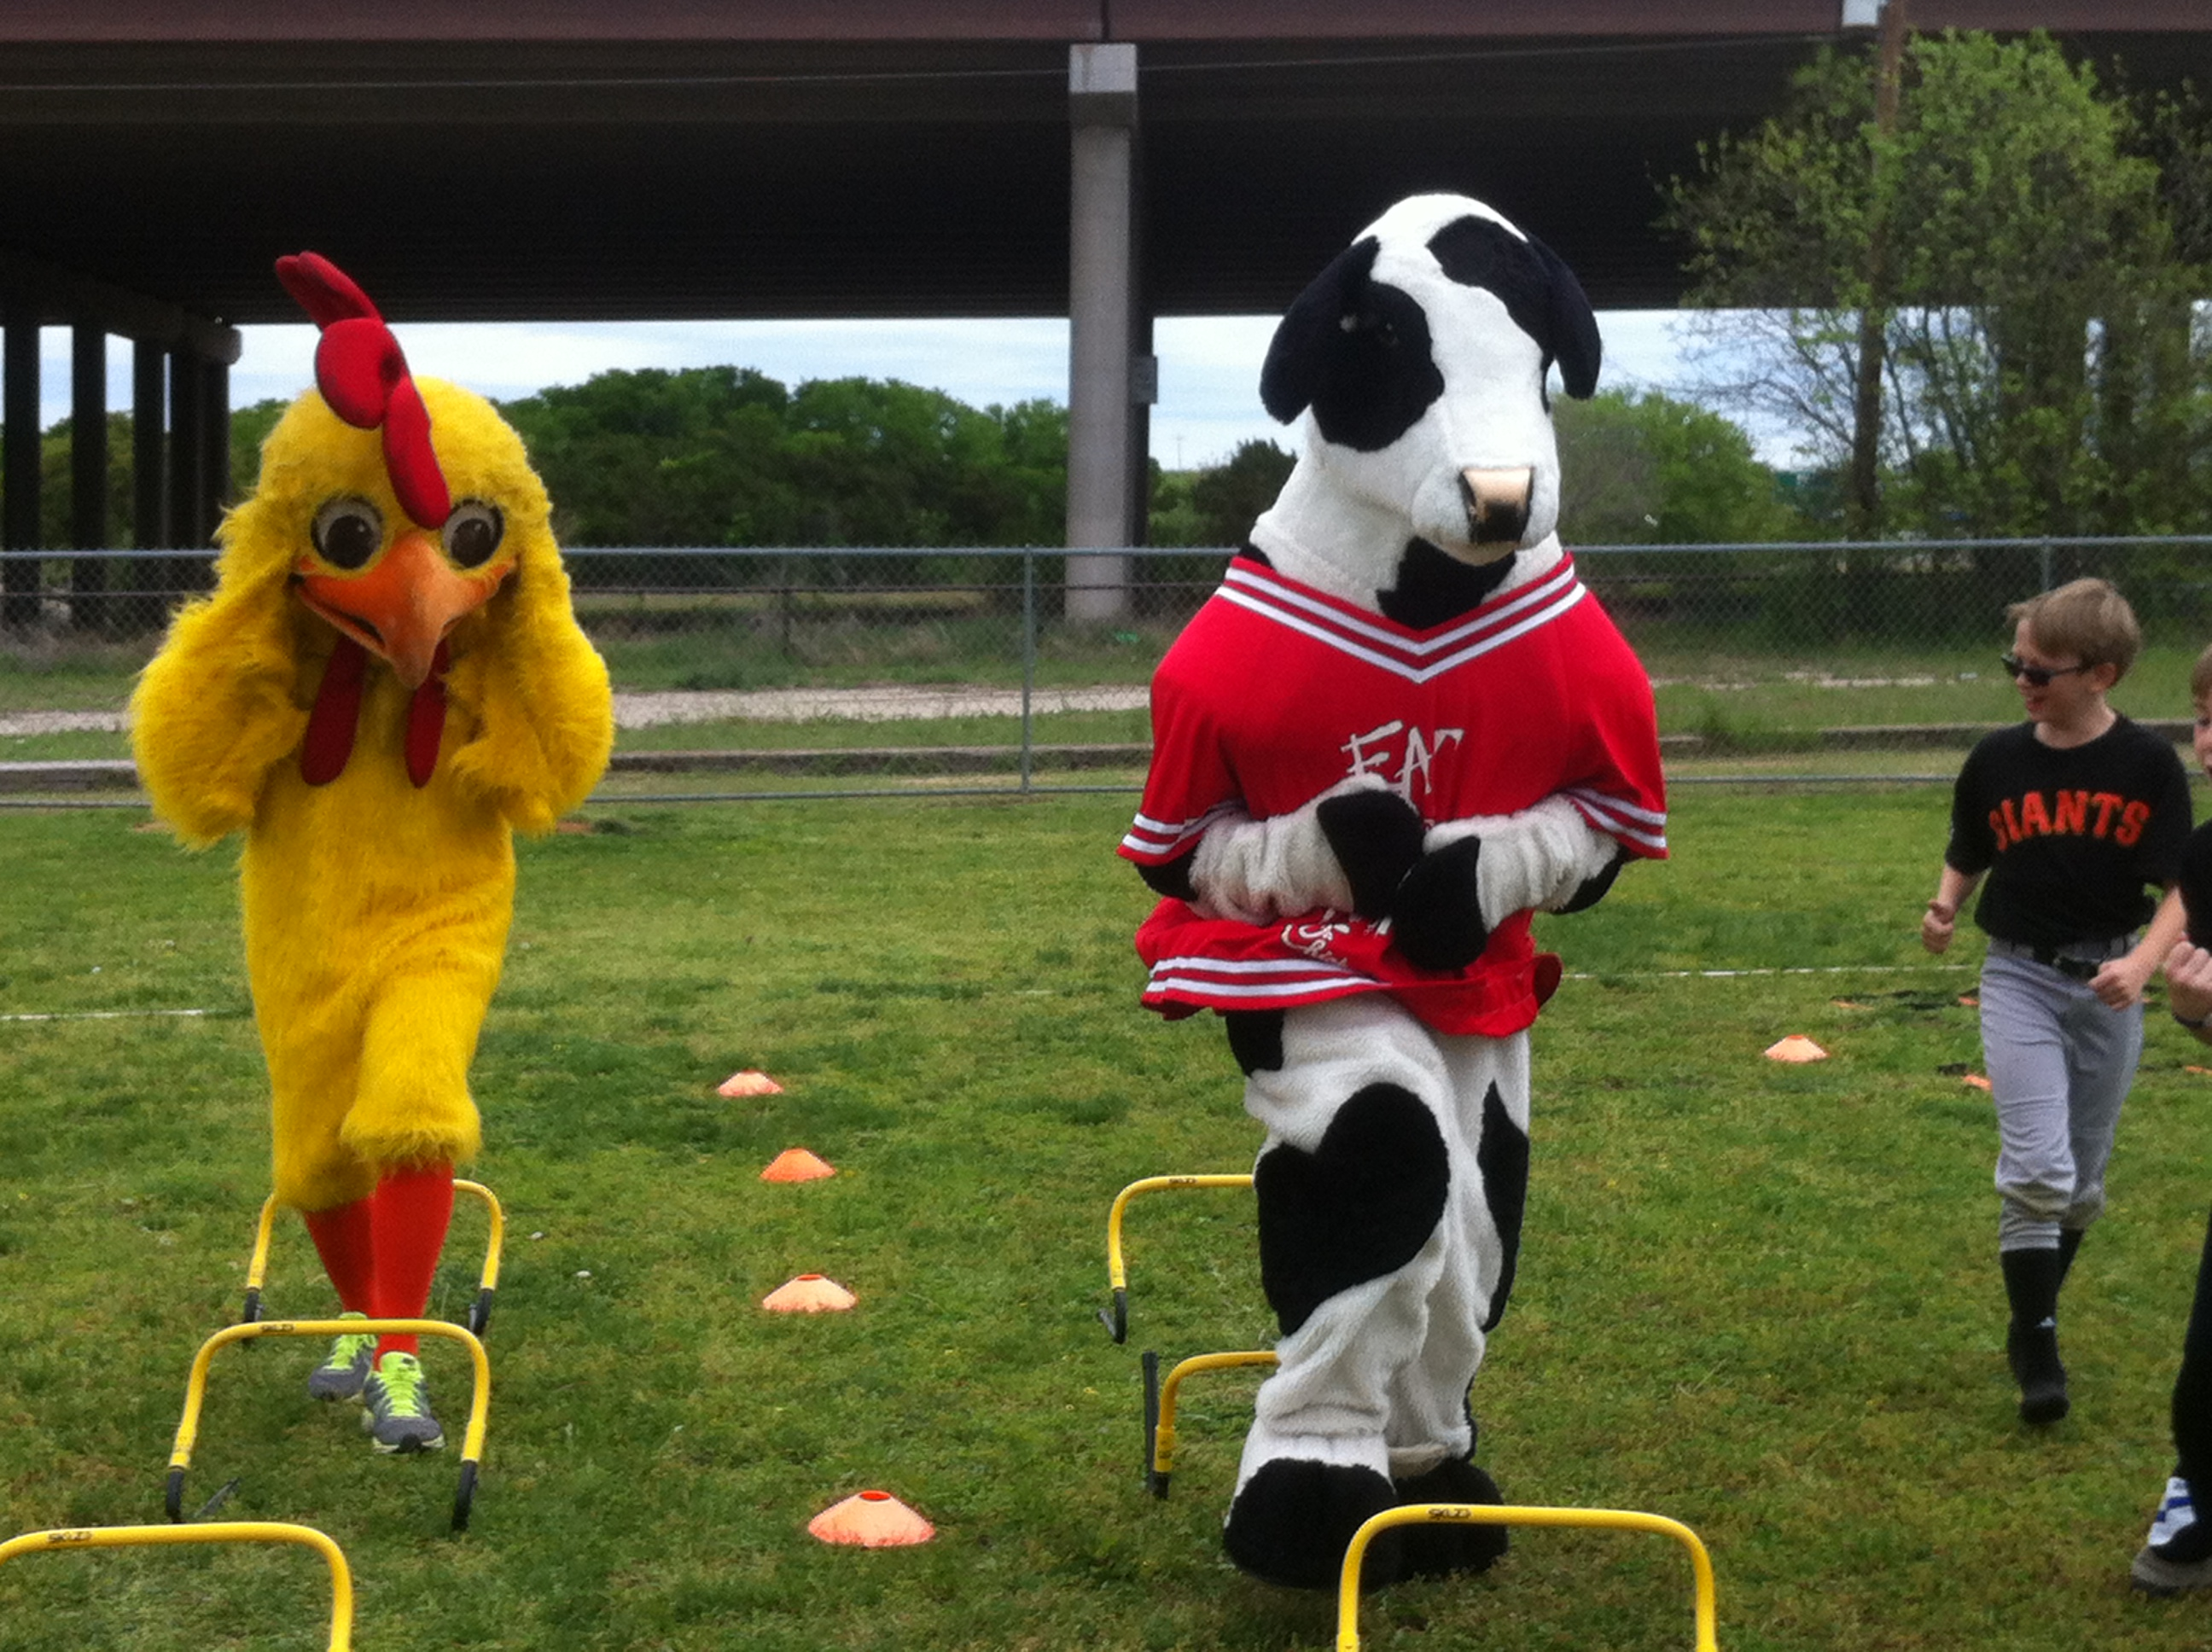 Pluckers Mascot  & ChickFilA race in Camp Gladiator Obstacle Course